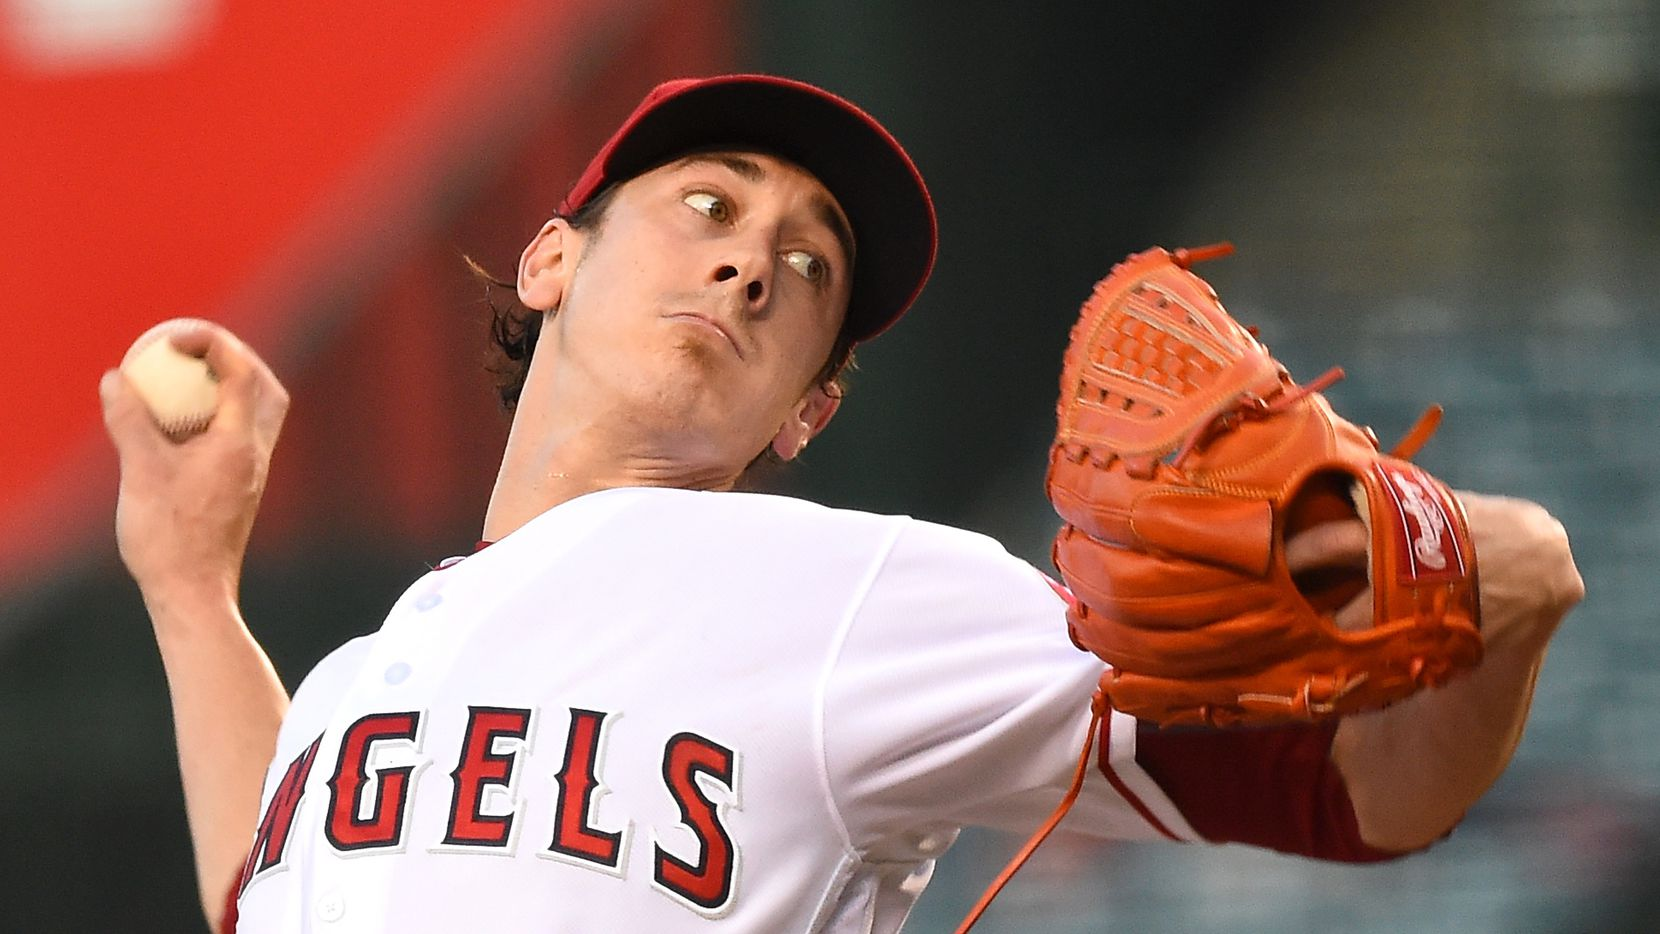 ANAHEIM, CA - JULY 29:  Tim Lincecum (#55) of the Los Angeles Angels is pictured during the second inning of a game against the Boston Red Sox at Angel Stadium of Anaheim on July 29, 2016, in Anaheim, Calif.  (Photo by Jayne Kamin-Oncea/Getty Images)